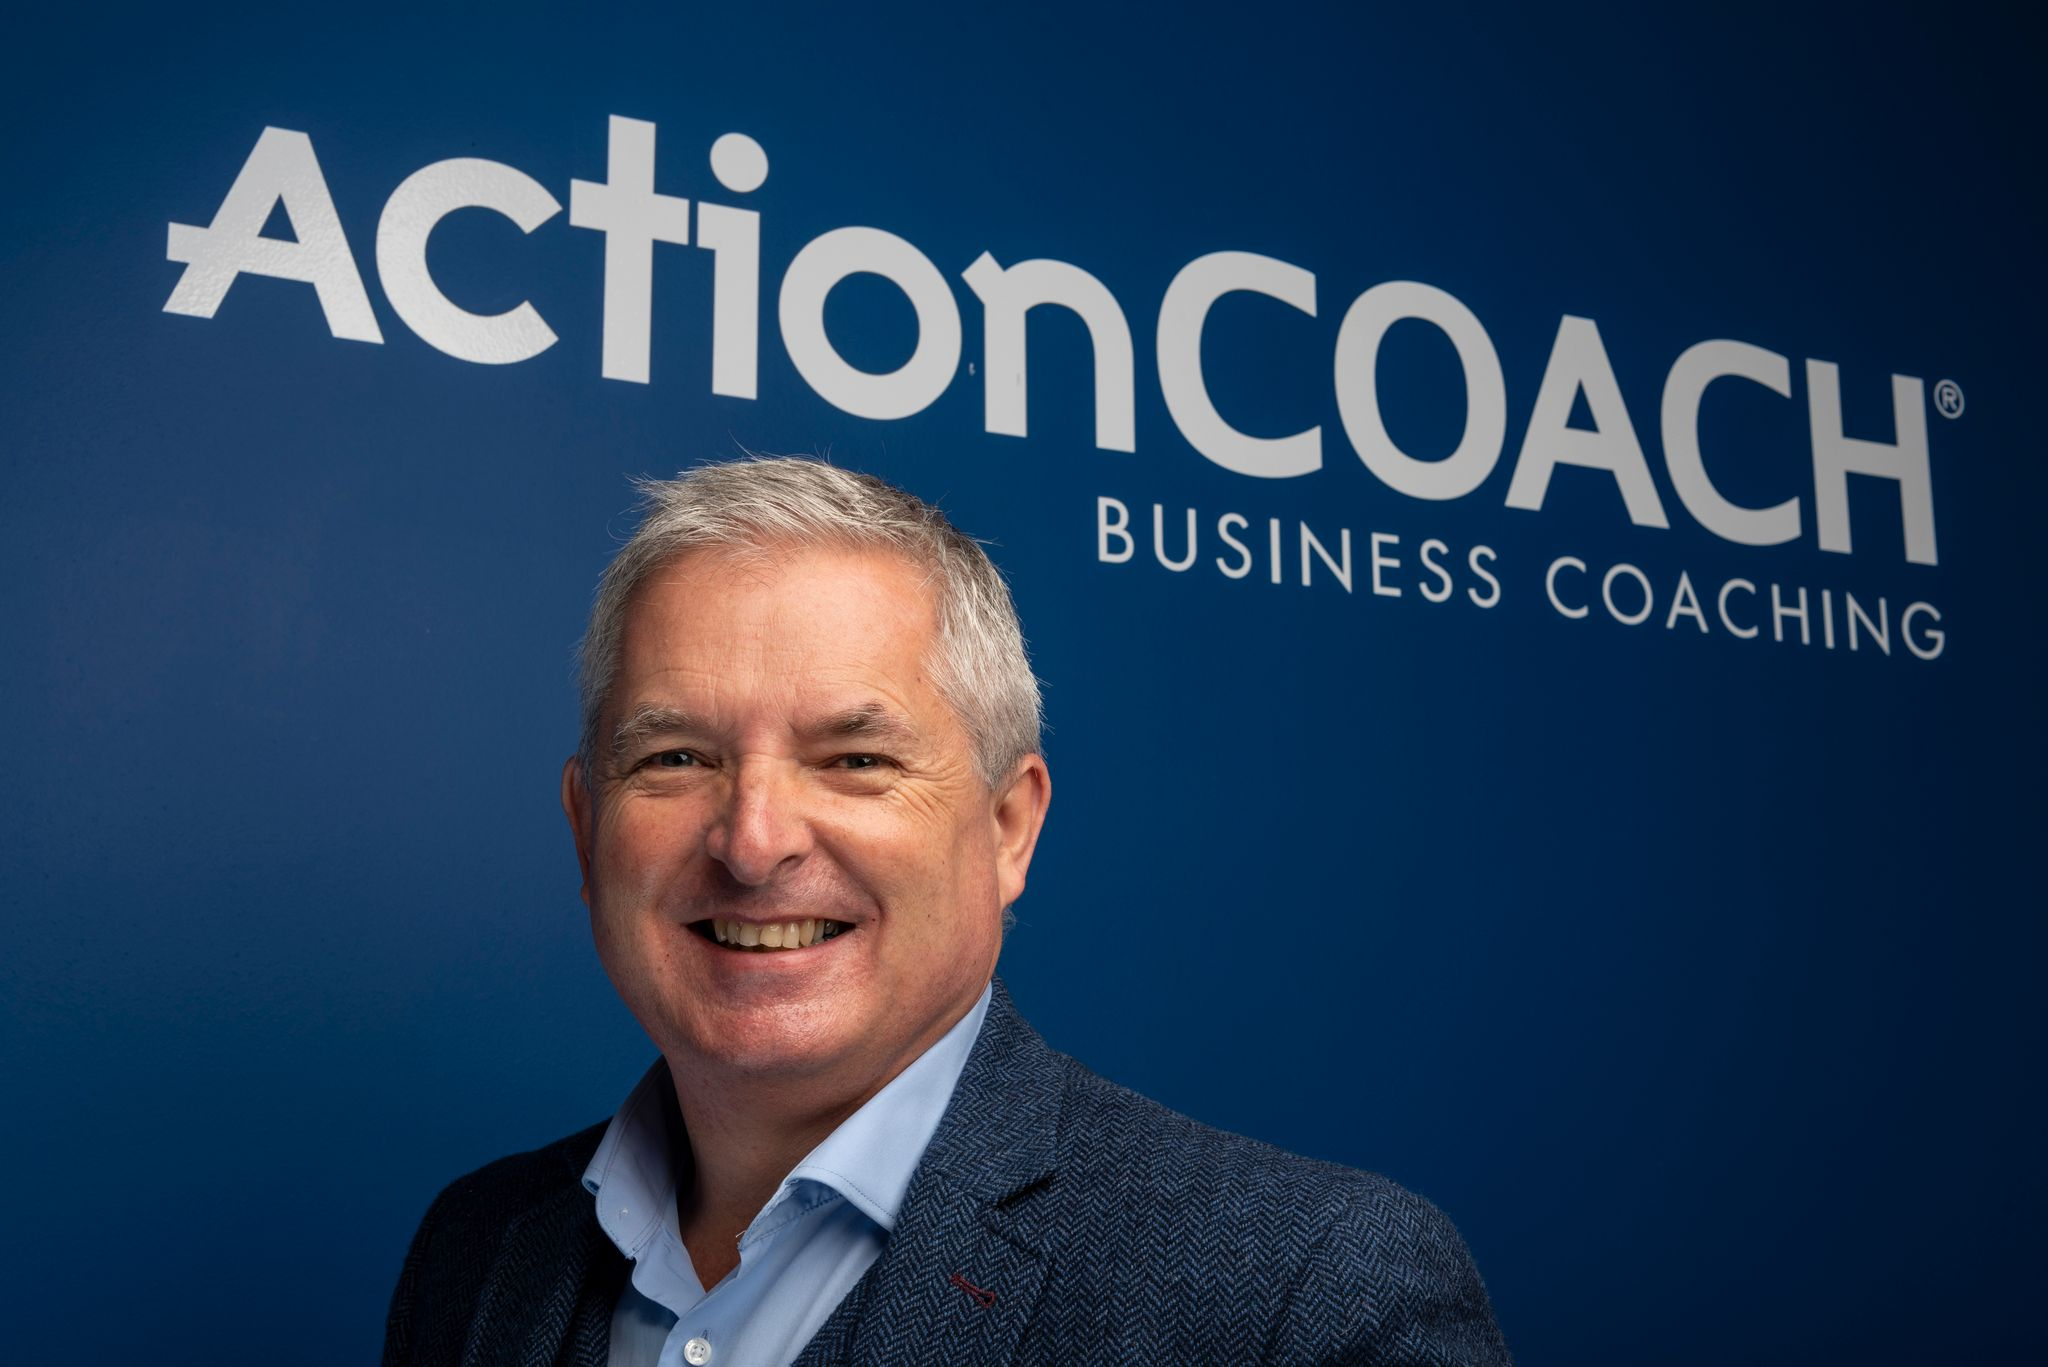 BOLTON EXPERT OFFERS SUPPORT TO BUSINESSES